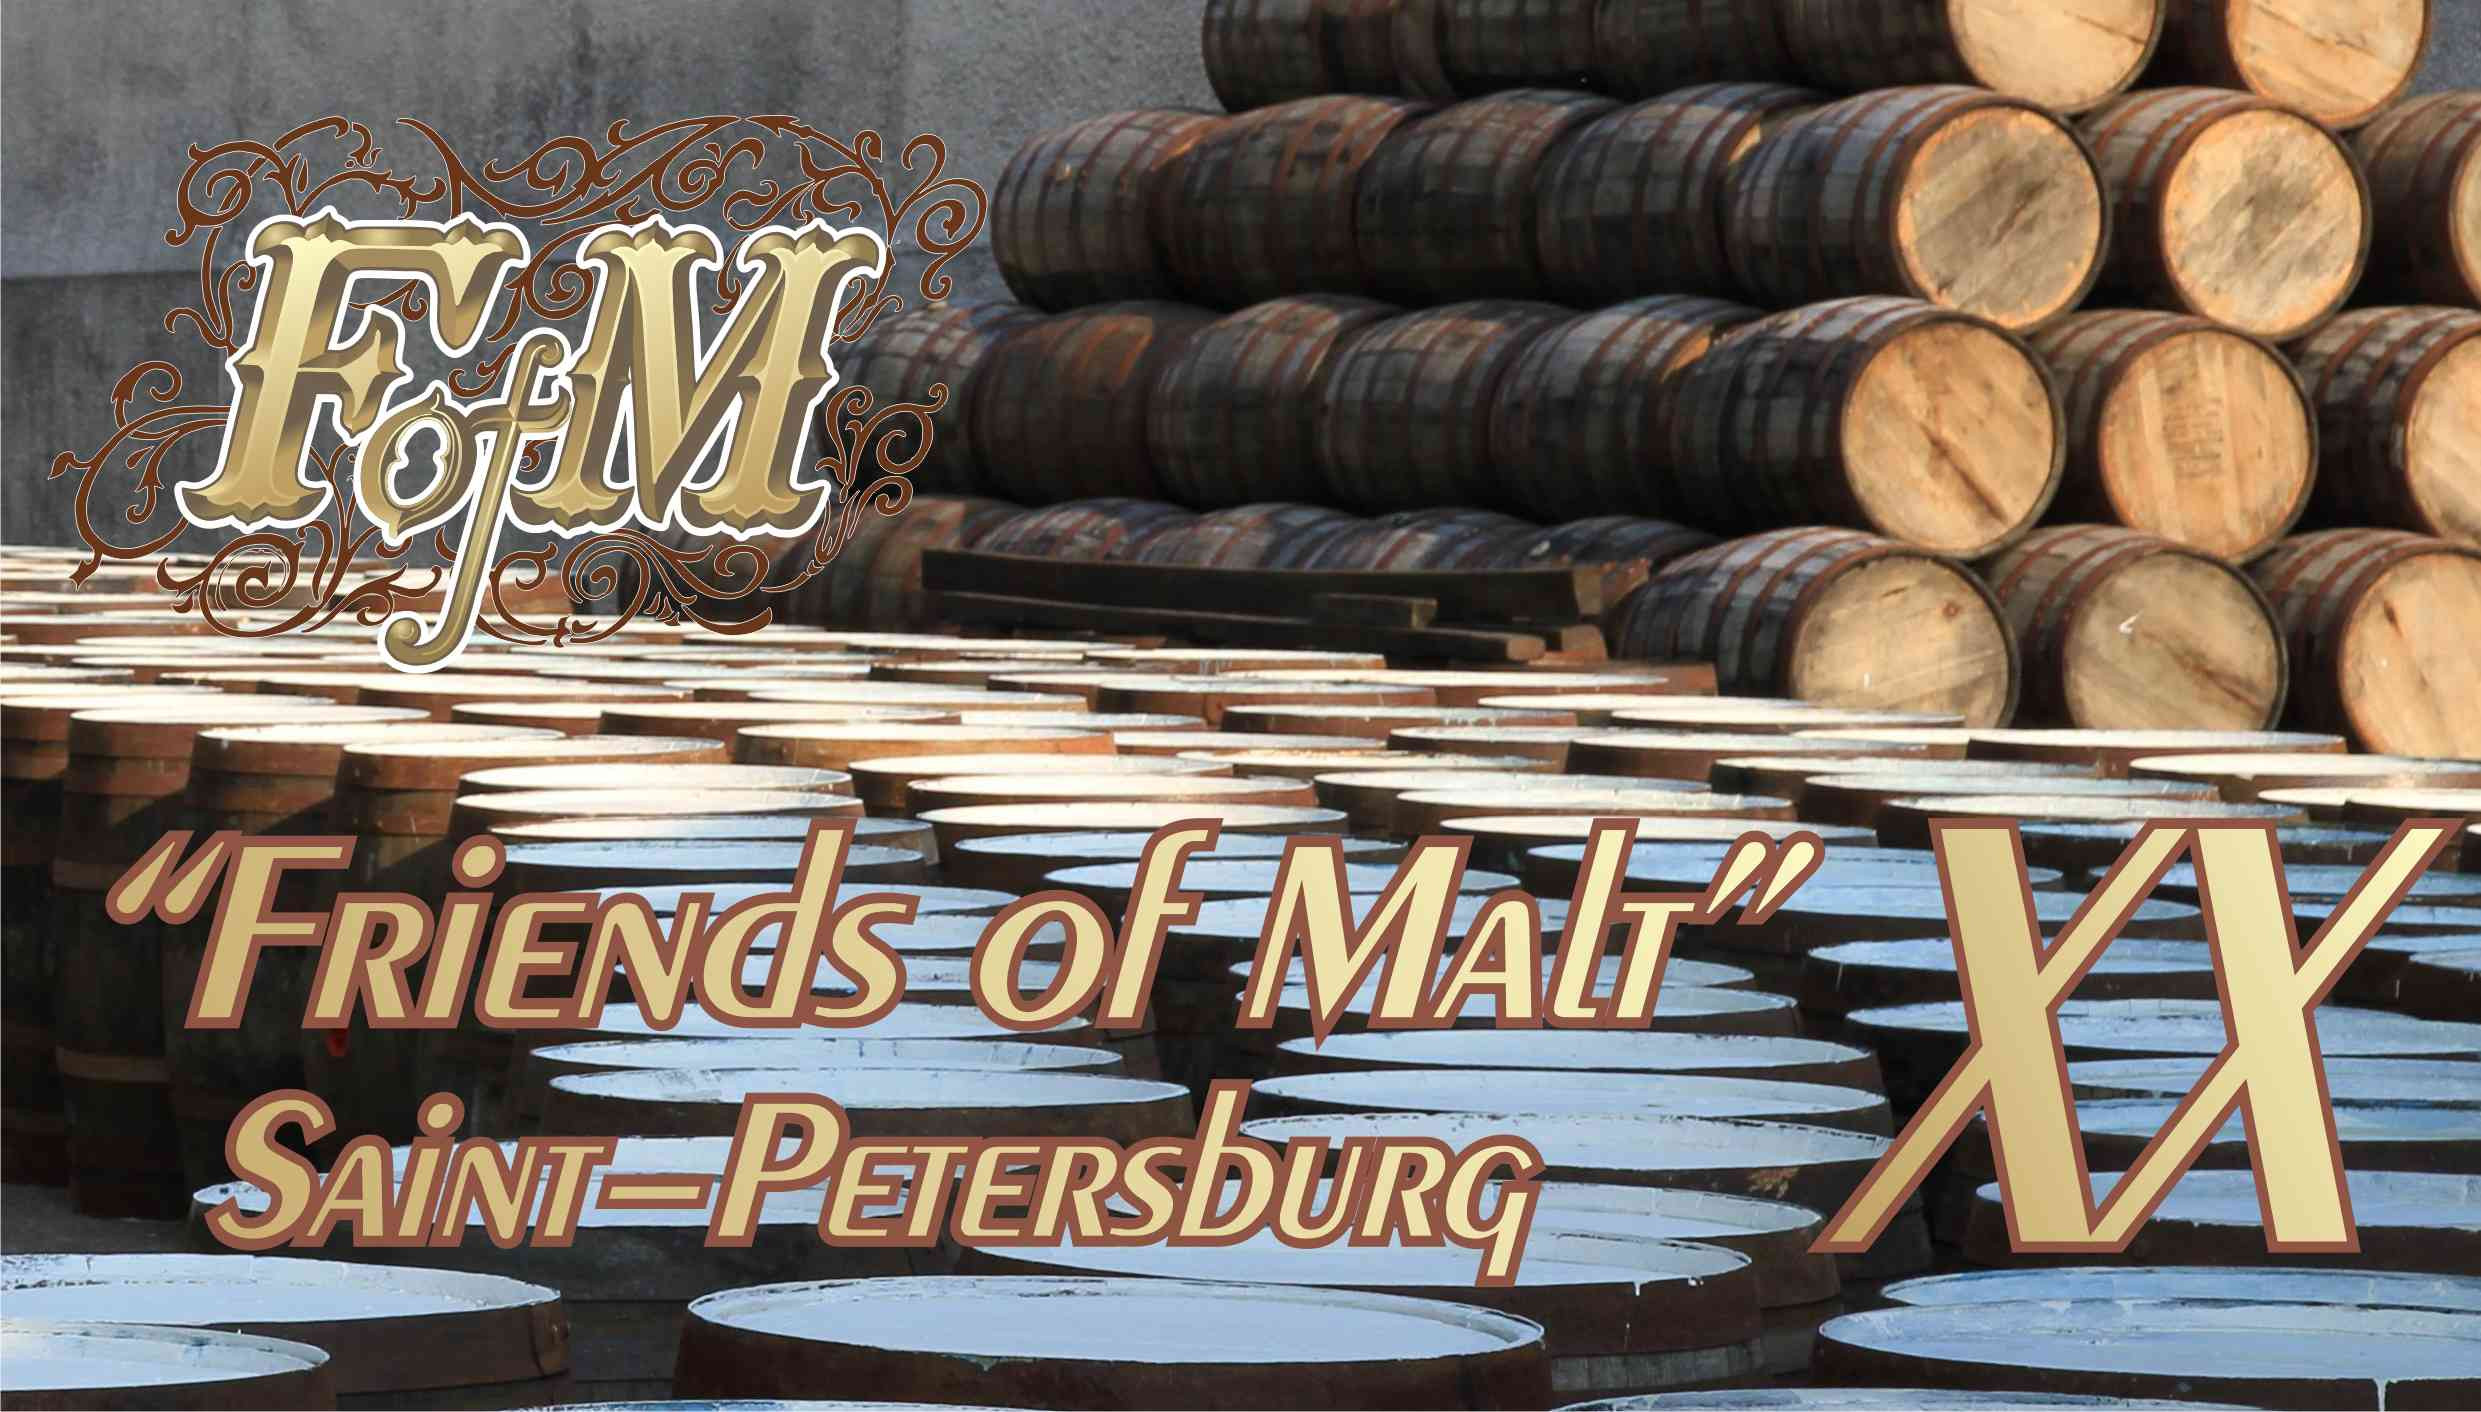 Friends of Malt - St. Petersburg